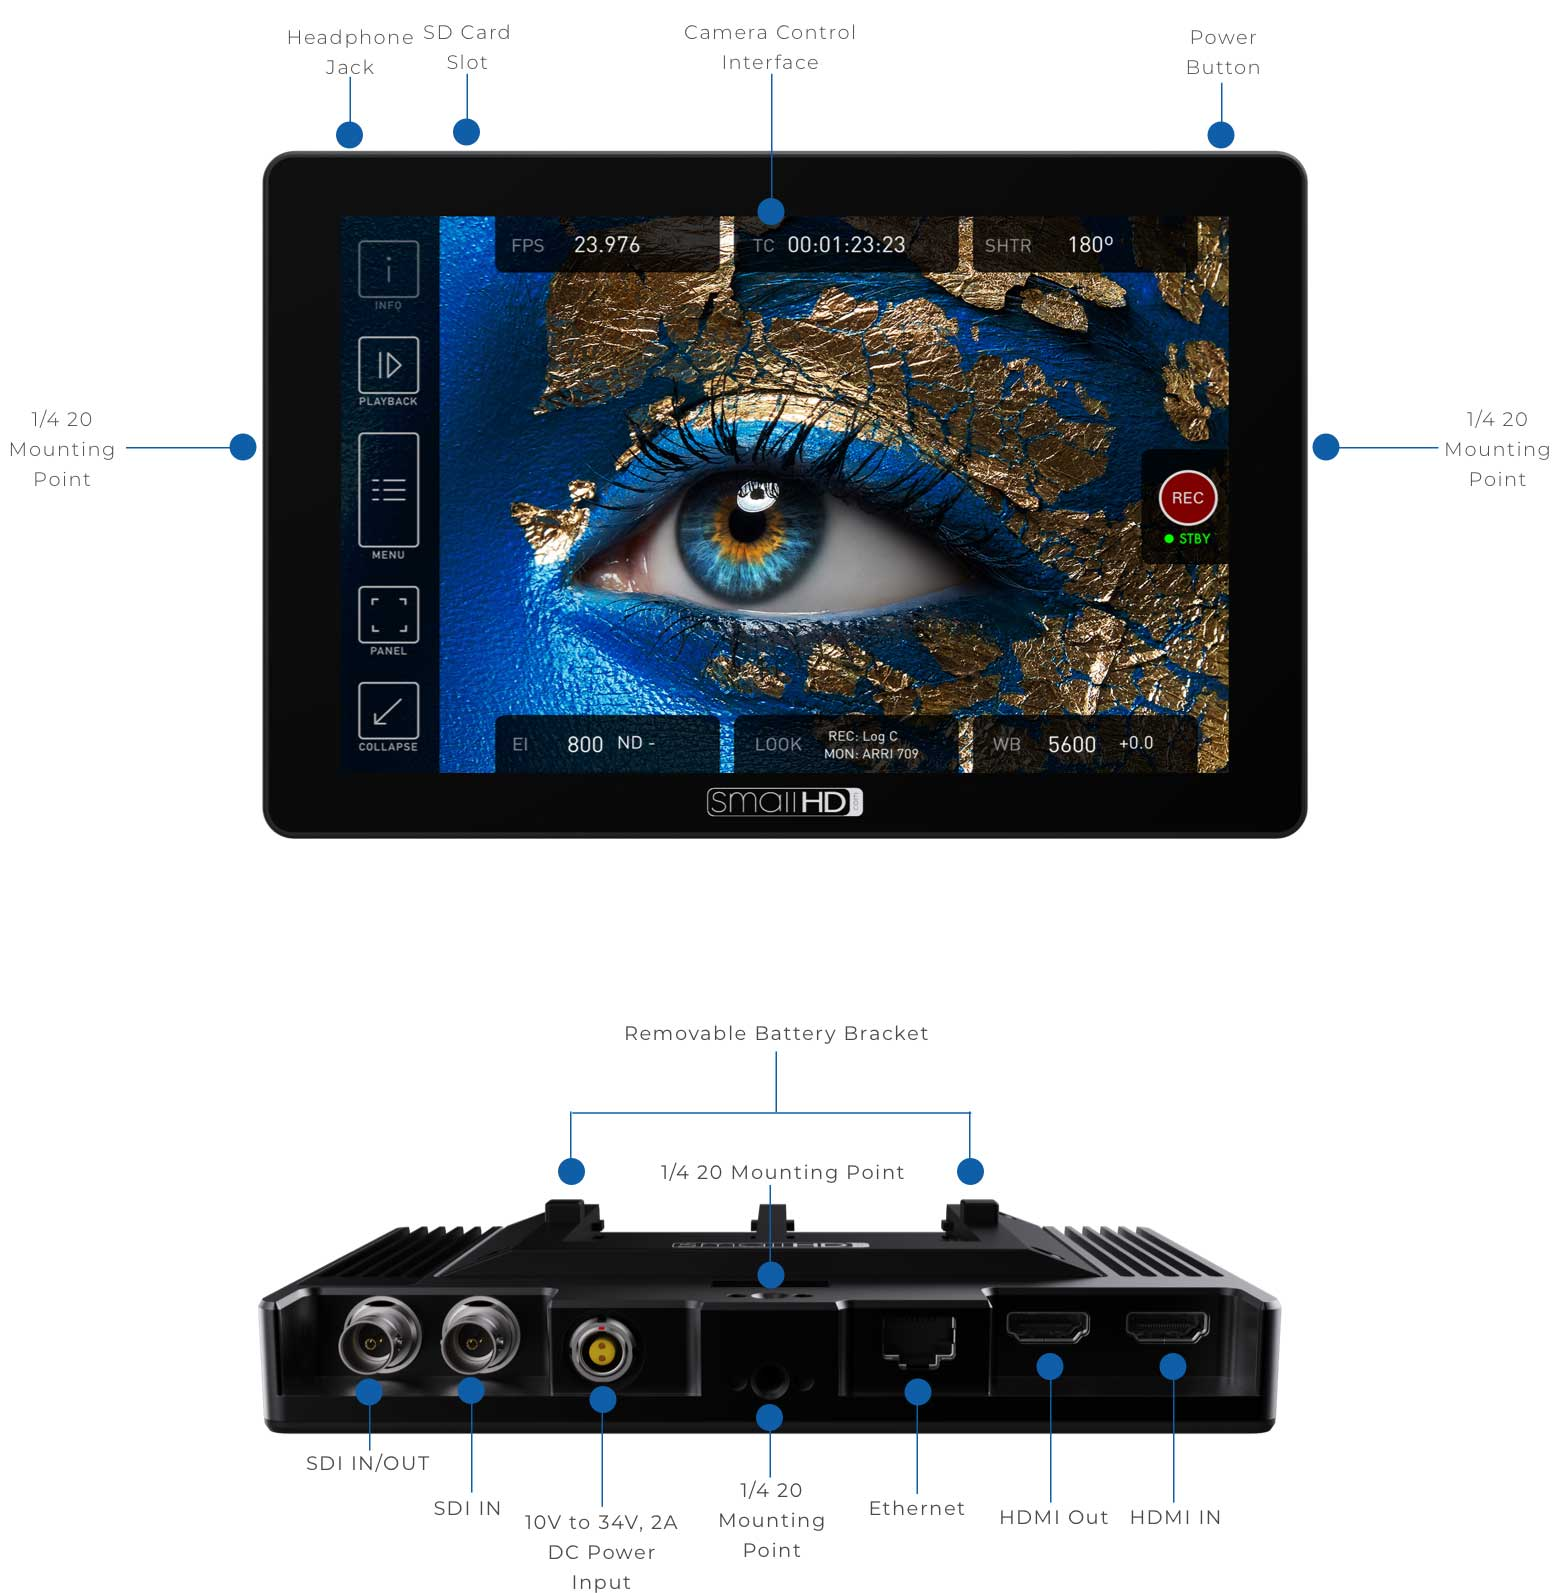 CINE 7-inch Touchscreen Monitor with DCI-P3 Color and 1800 nits brightness w/ ARRI camera control